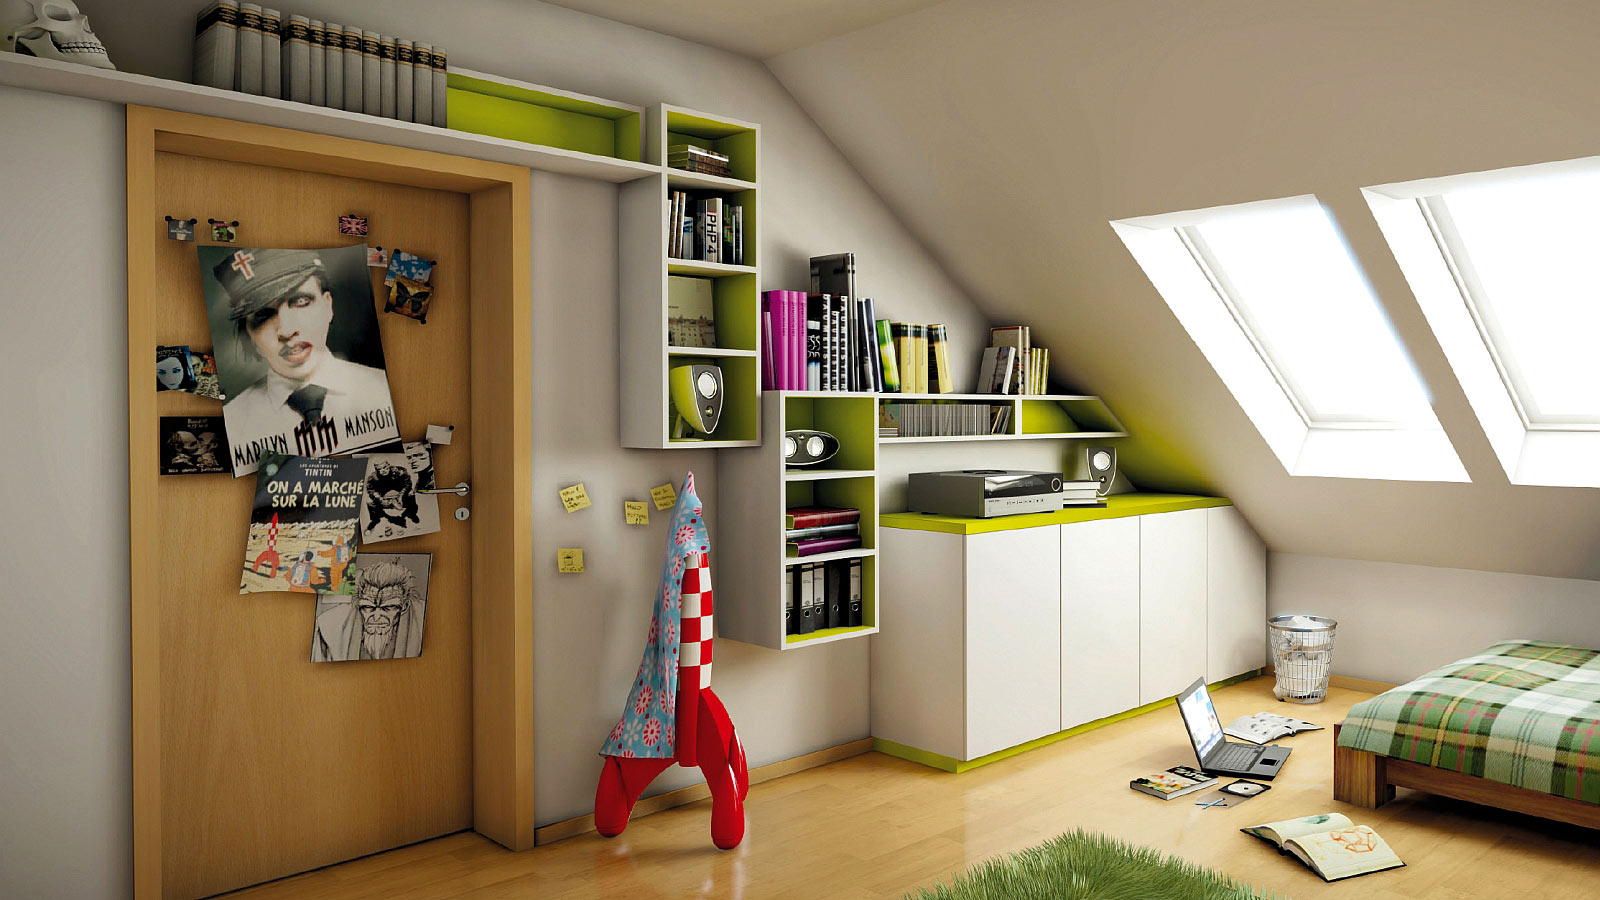 pytha in schule und ausbildung. Black Bedroom Furniture Sets. Home Design Ideas